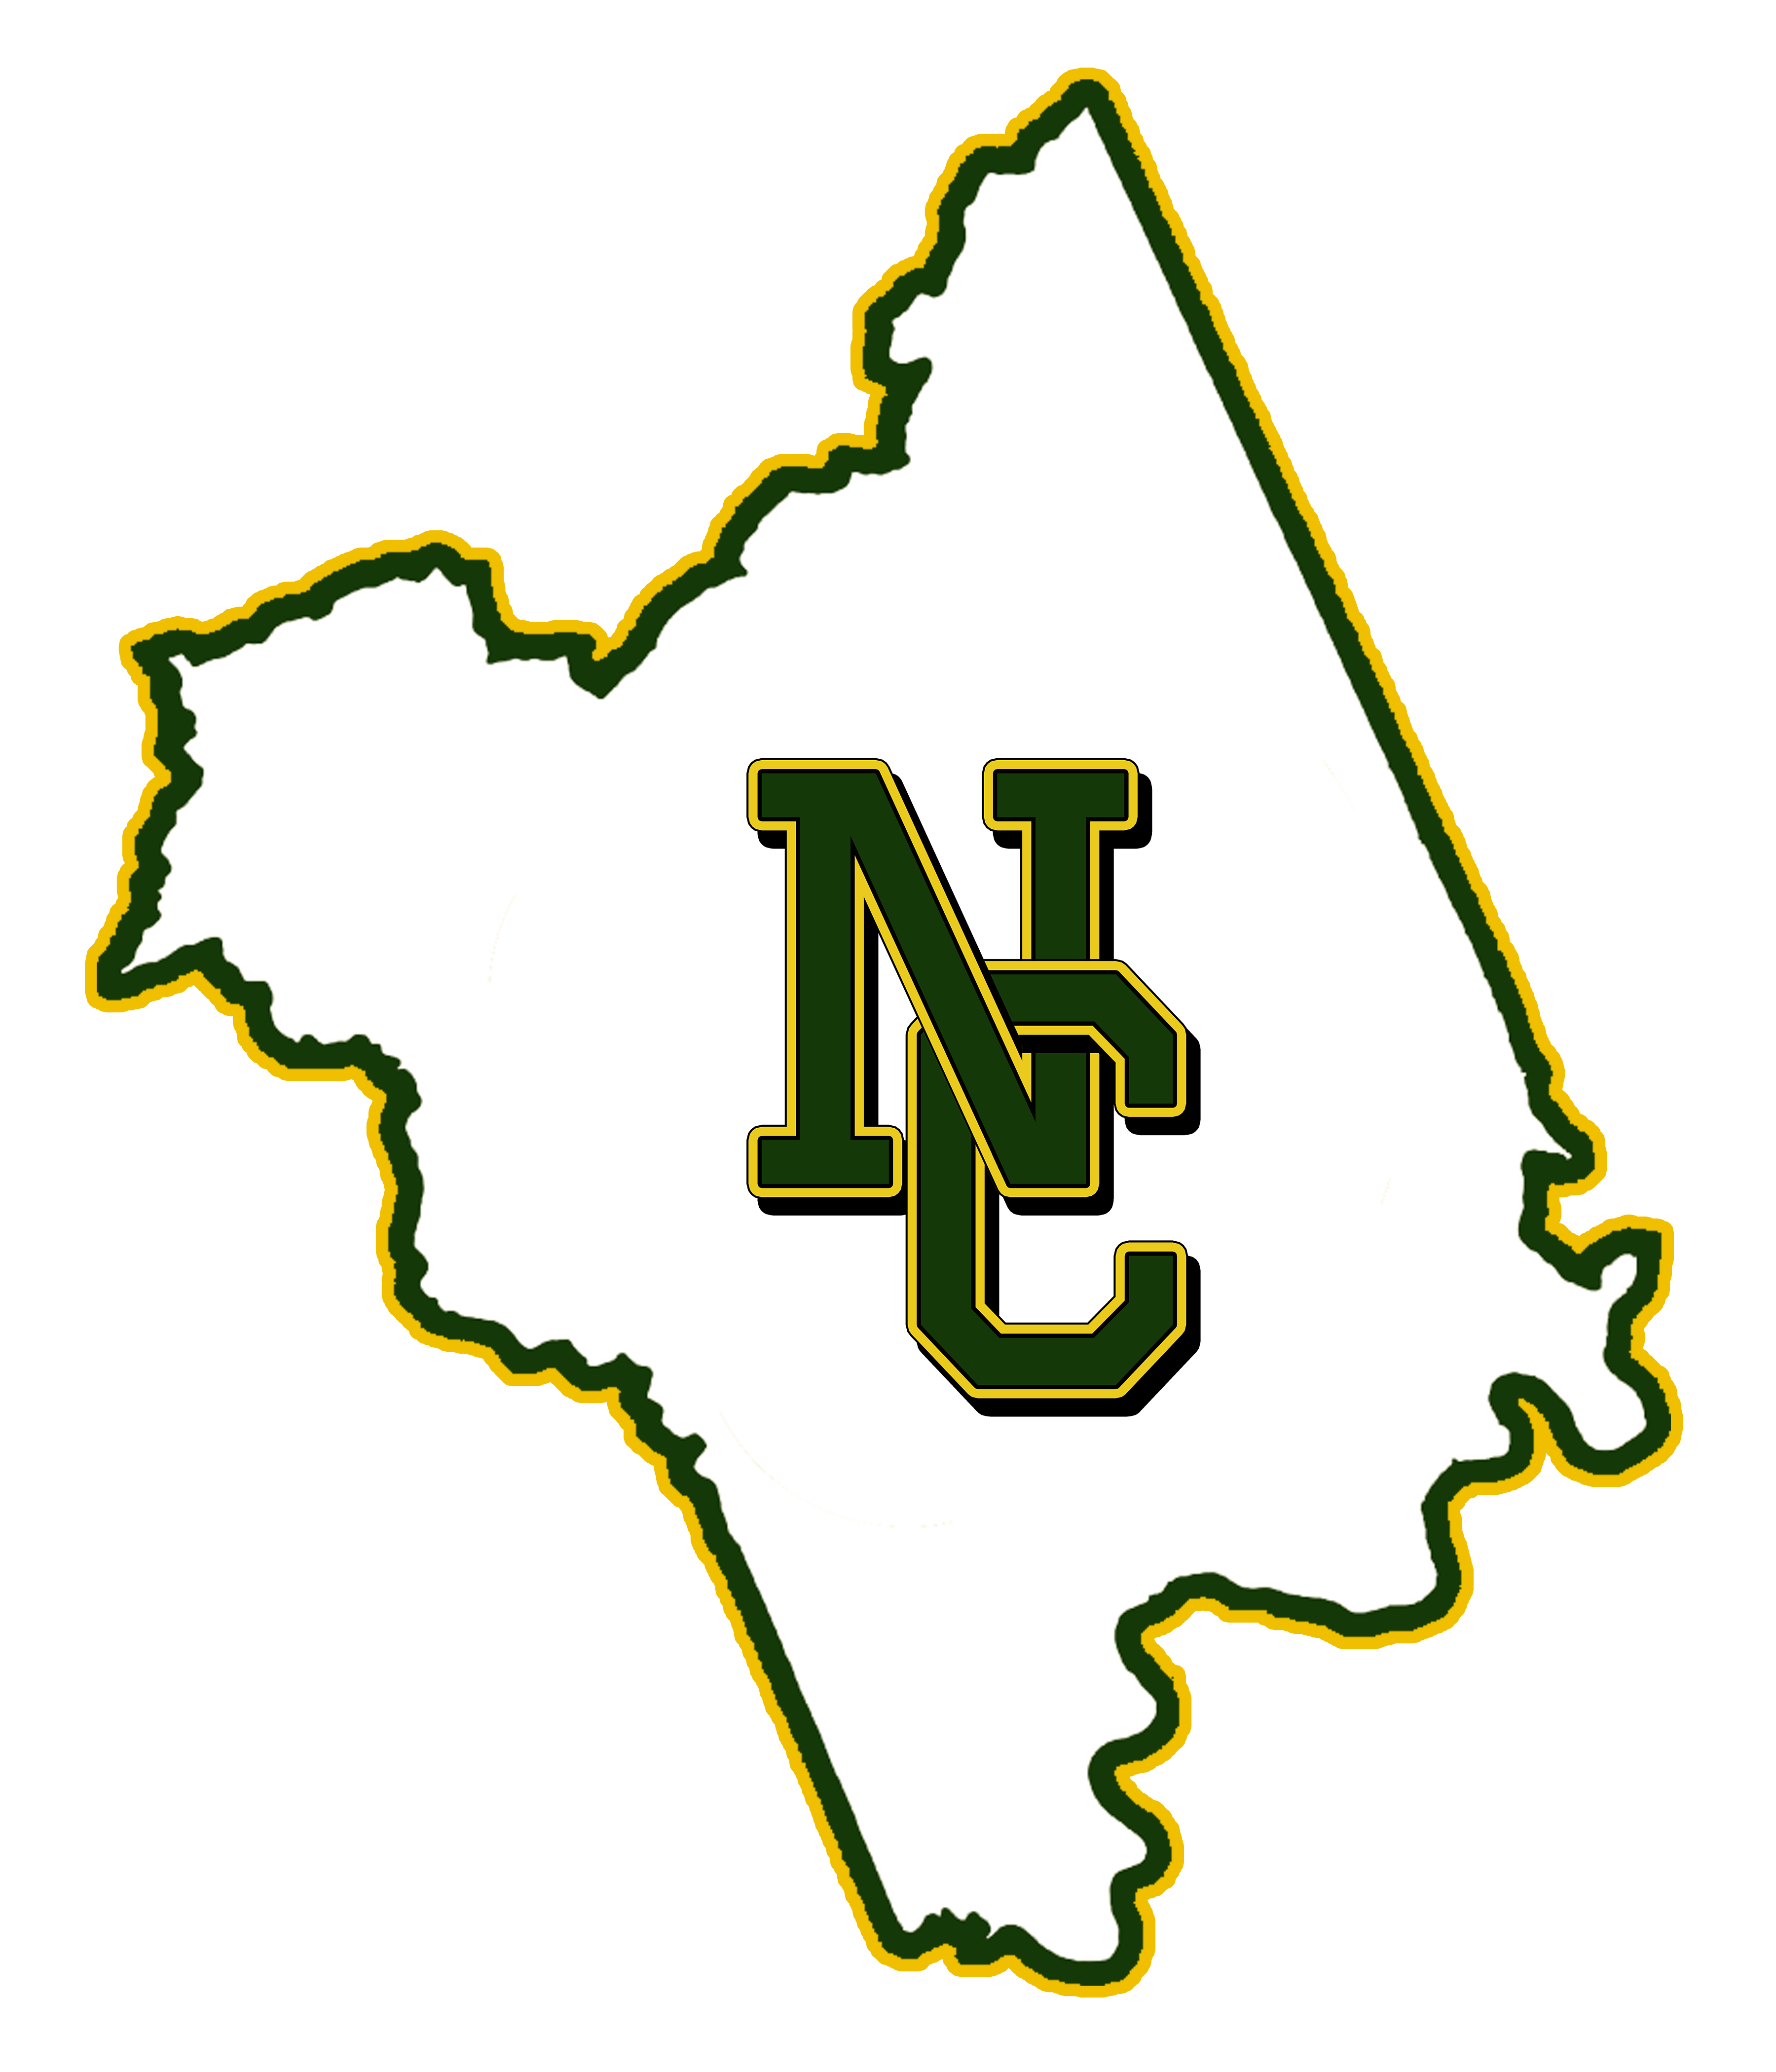 Nelson County School District